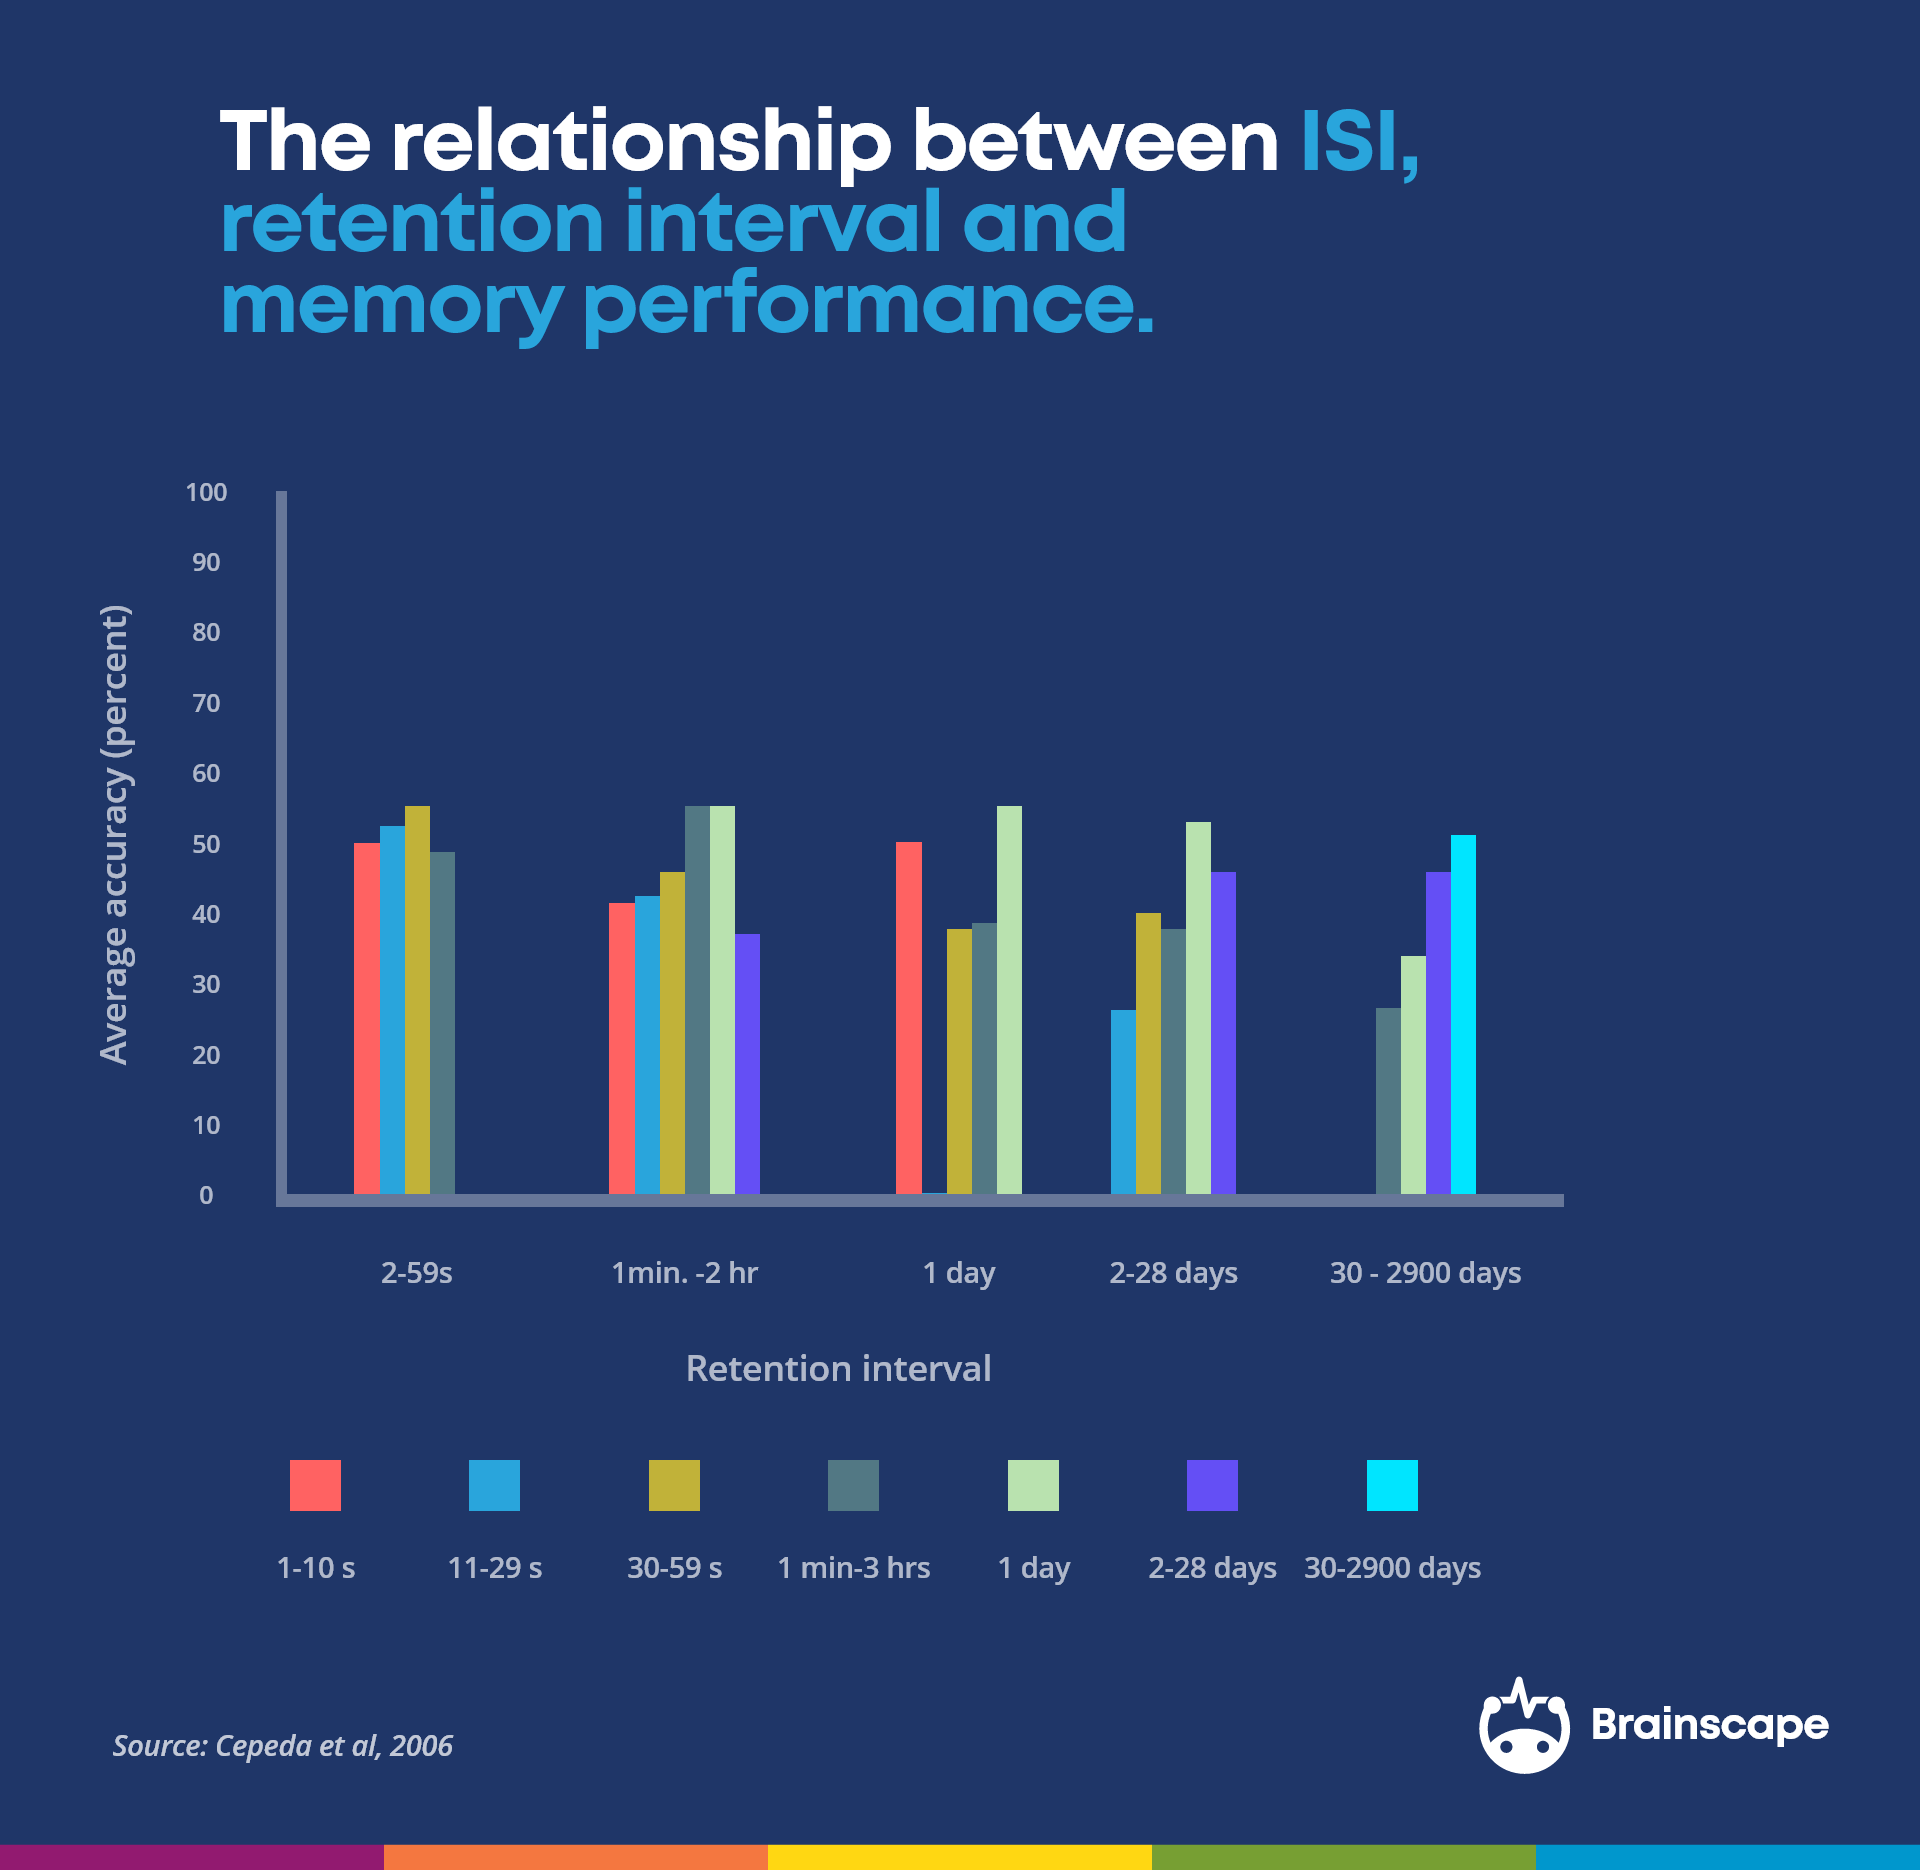 inter-study interval memory performance ISI cepeda 2006